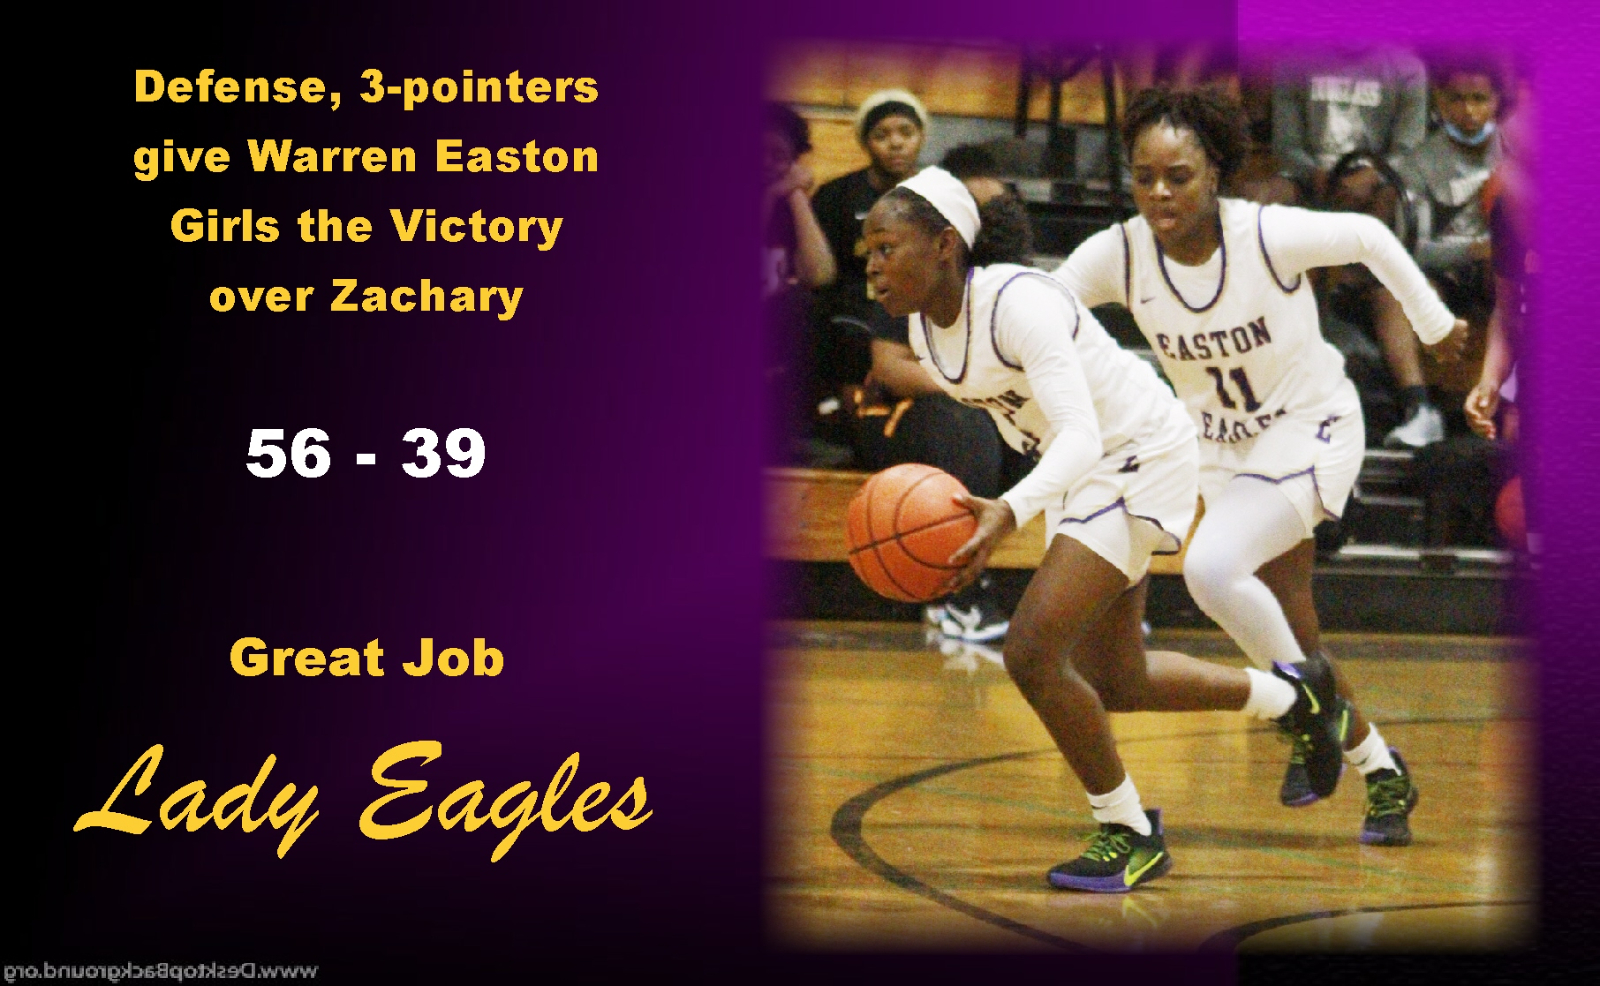 Defense, 3-pointers give Warren Easton Girls the Victory